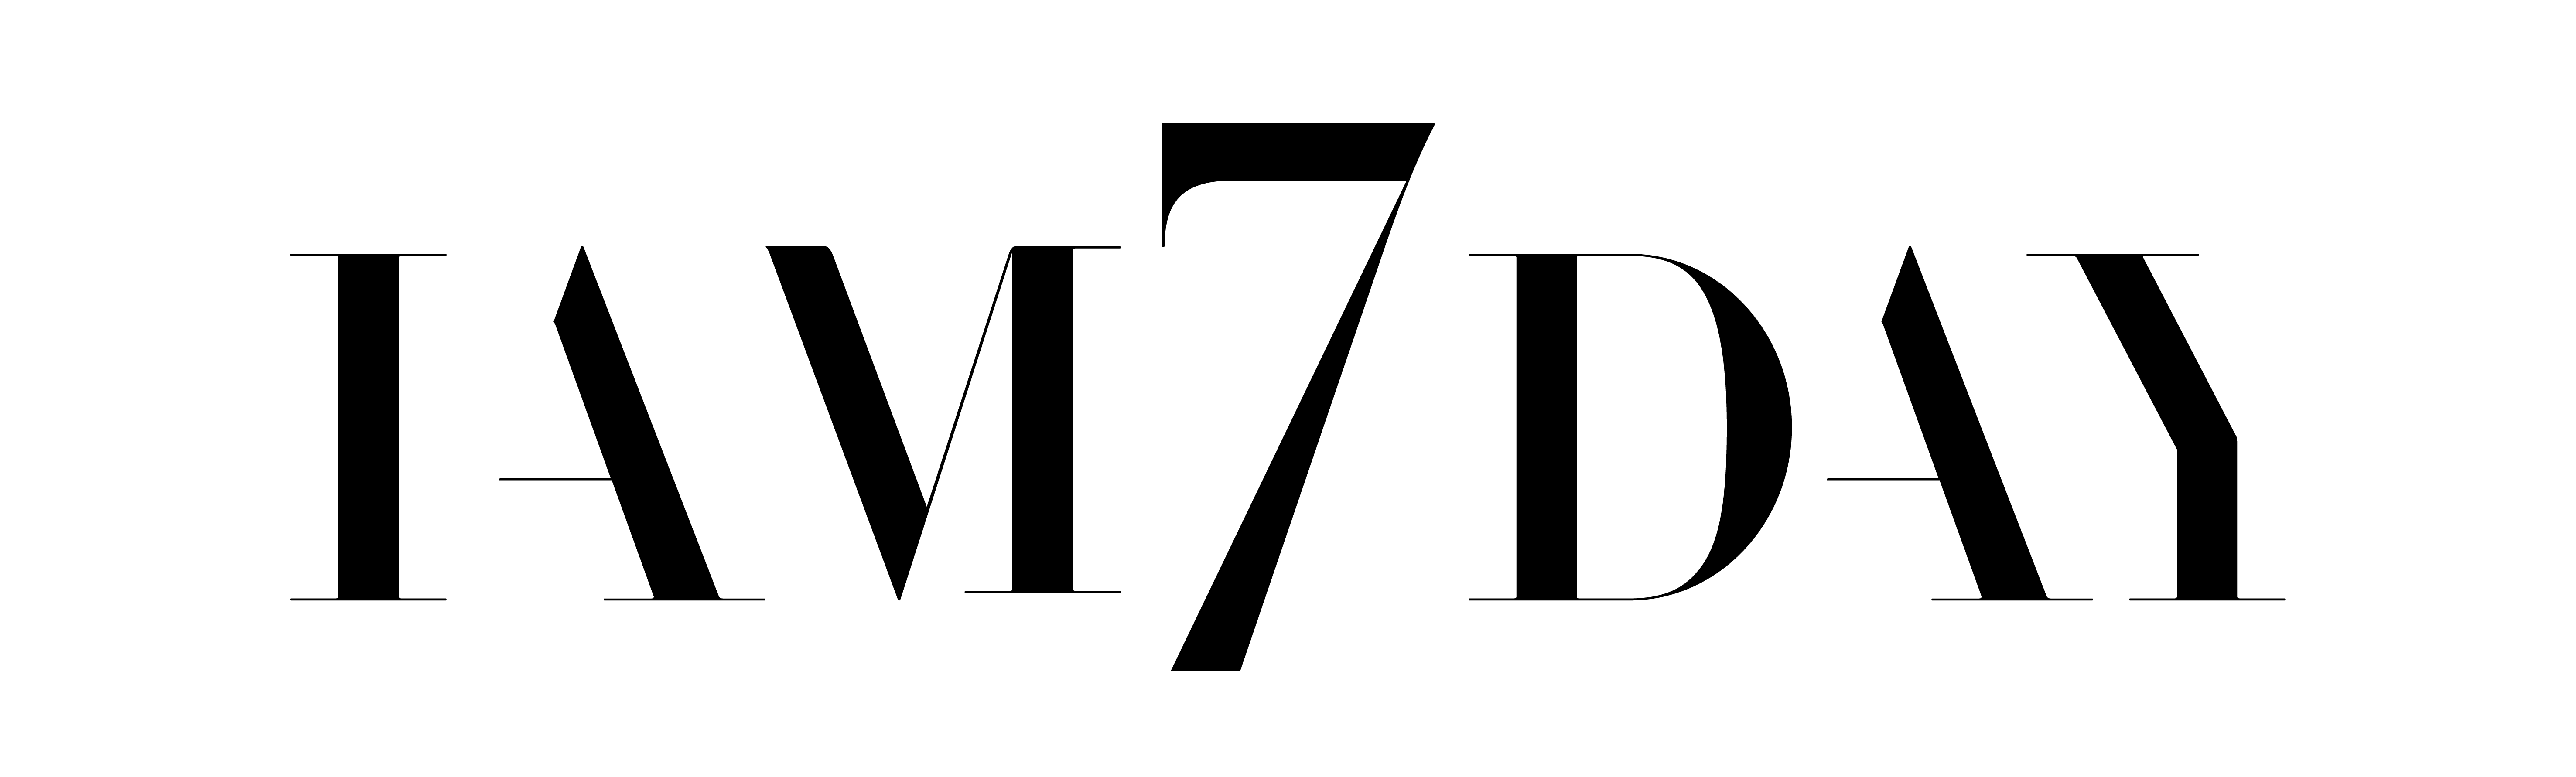 iam7day Fashion - iam7day.com